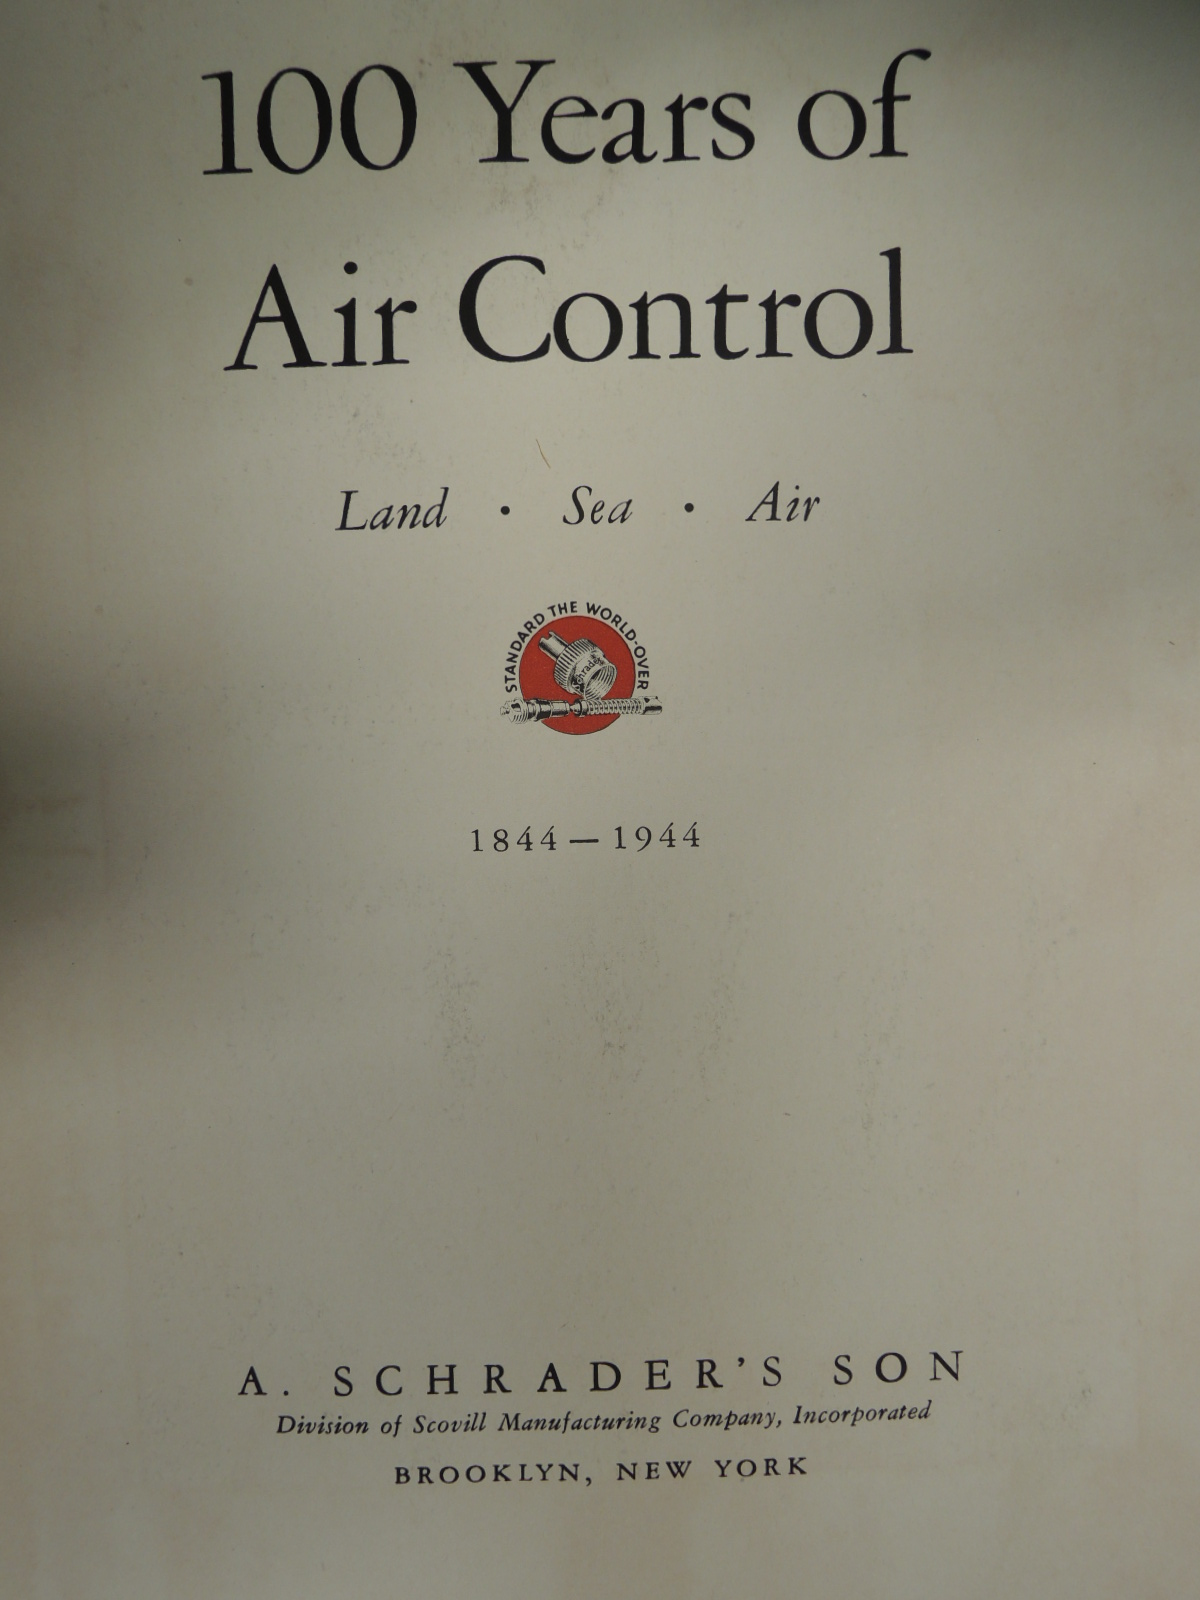 A. SCHRADER'S SON: 100 Years of Air Control 100 Years of Air Con